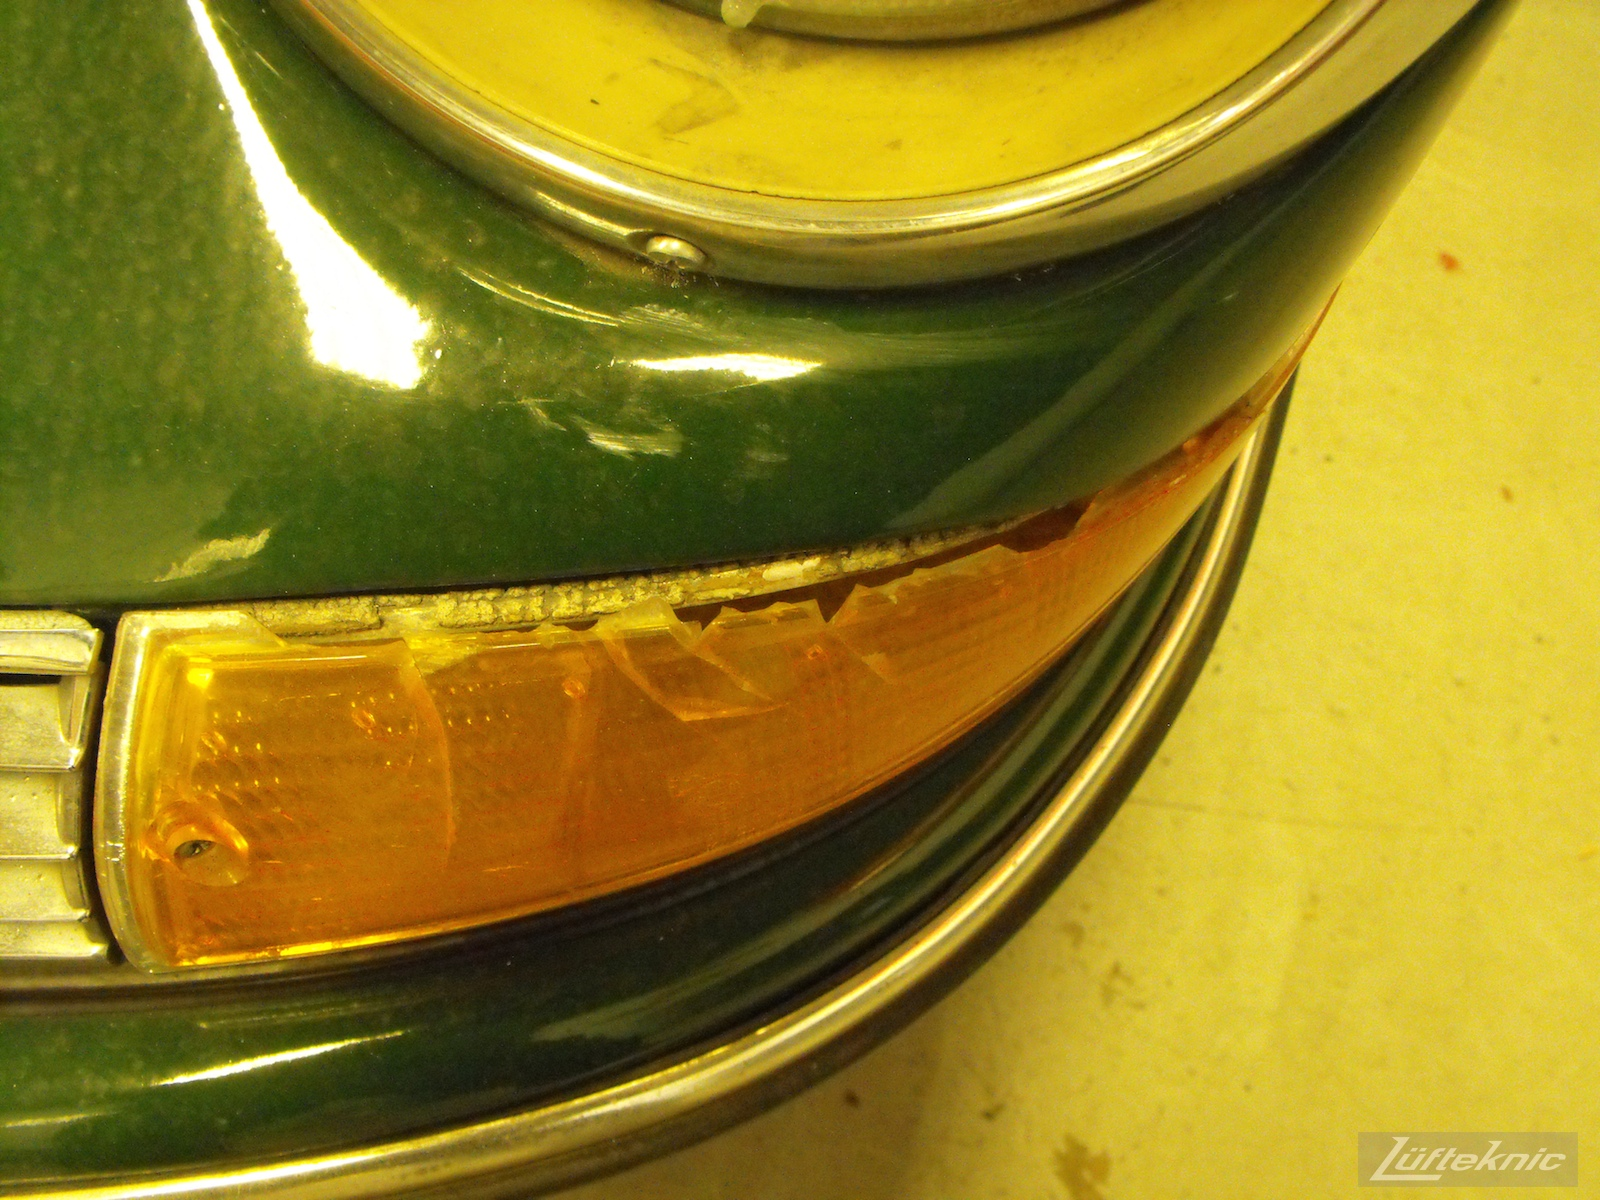 A cracked front turn signal lens of an Irish Green Porsche 912 undergoing restoration at Lufteknic.